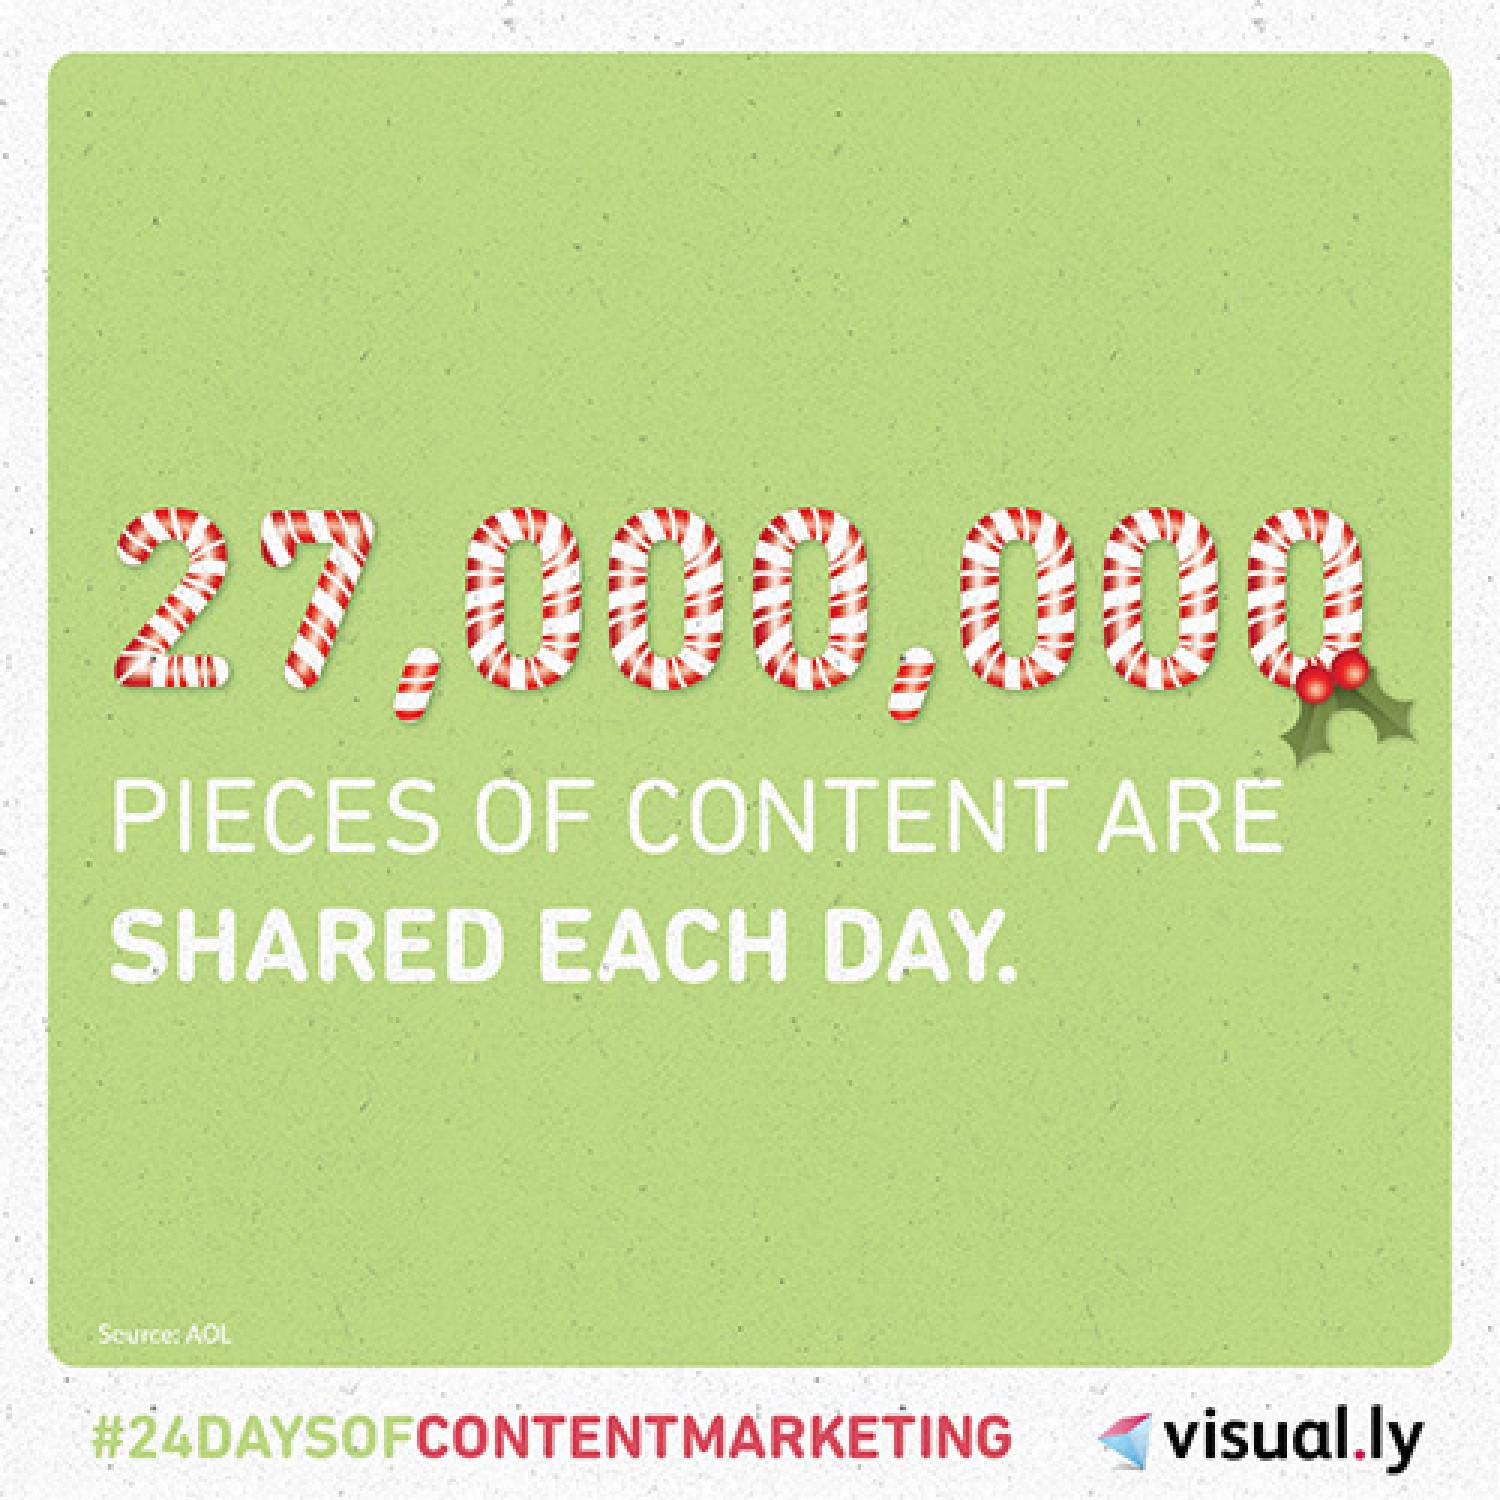 How Much Content is Shared Daily Infographic